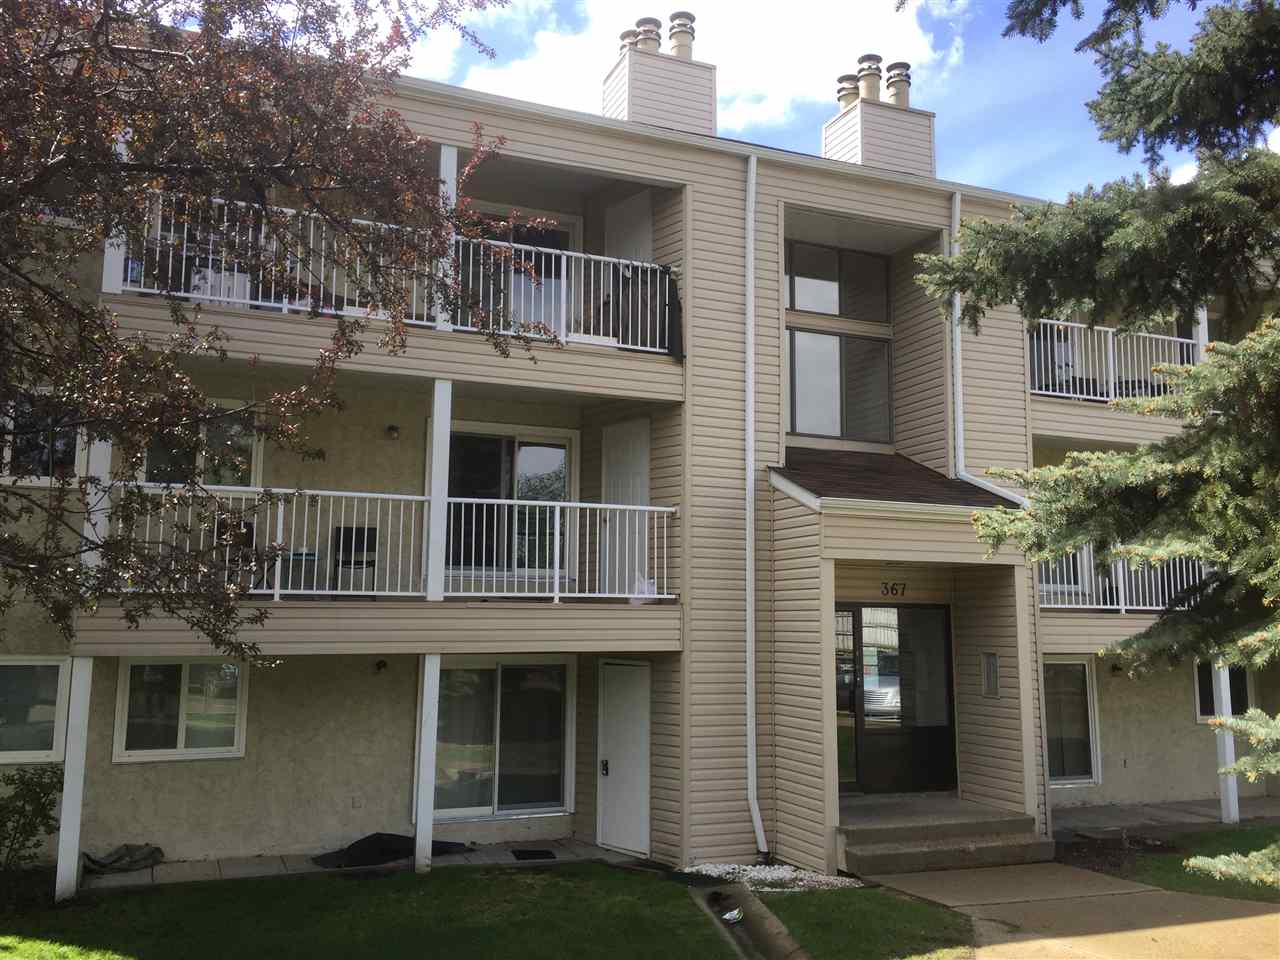 101 367 WOODBRIDGE WAY Sherwood Park Condo For Sale MLSR E4064032